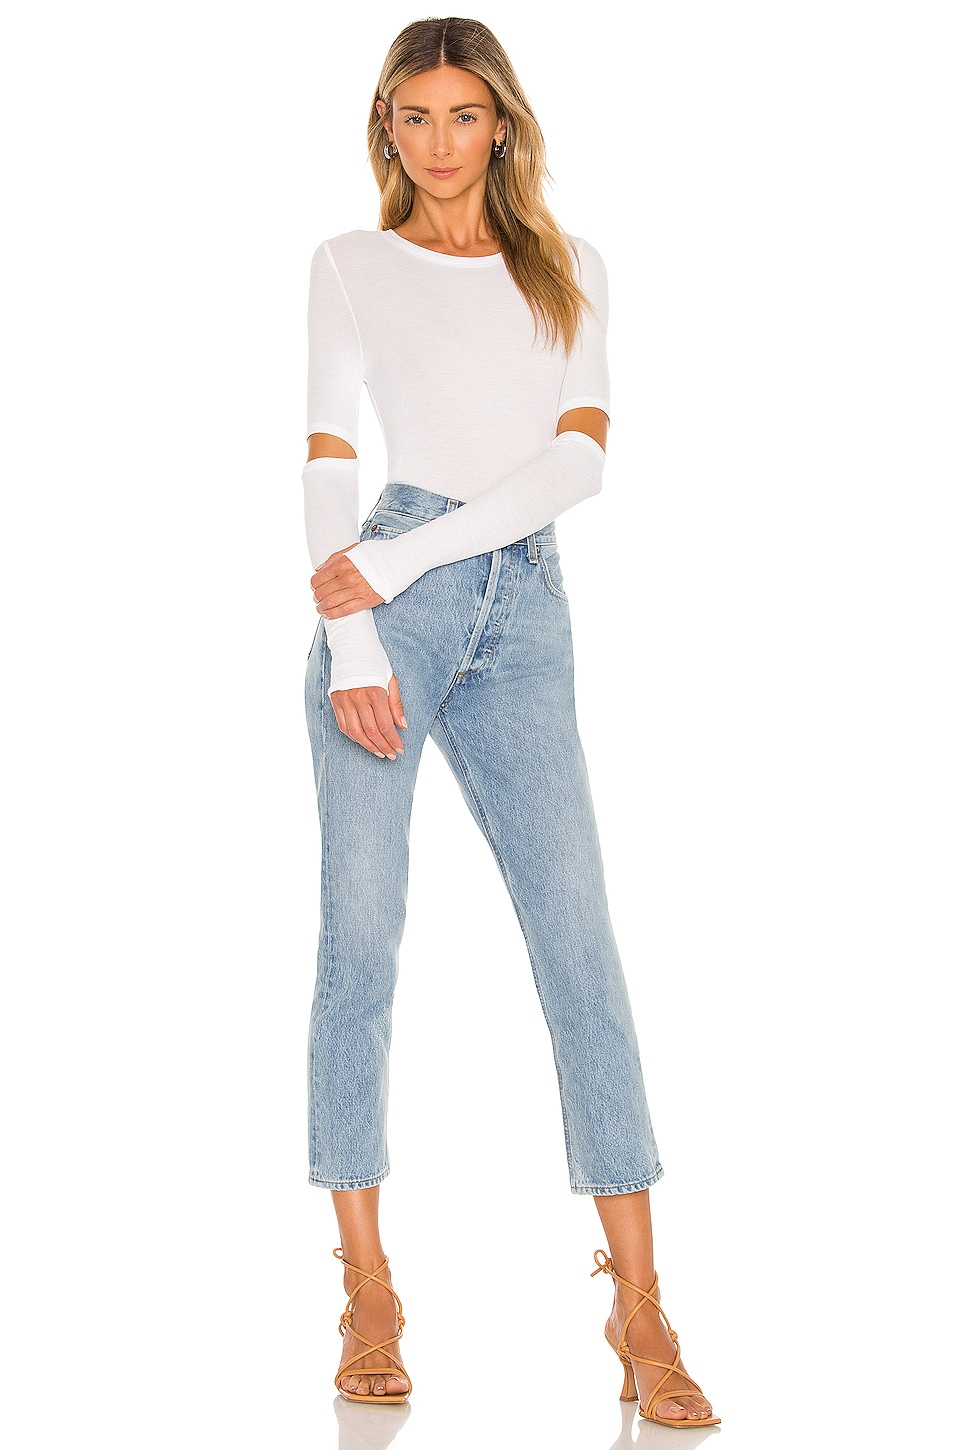 Solomon Elbow Cut Out Tee, view 4, click to view large image.